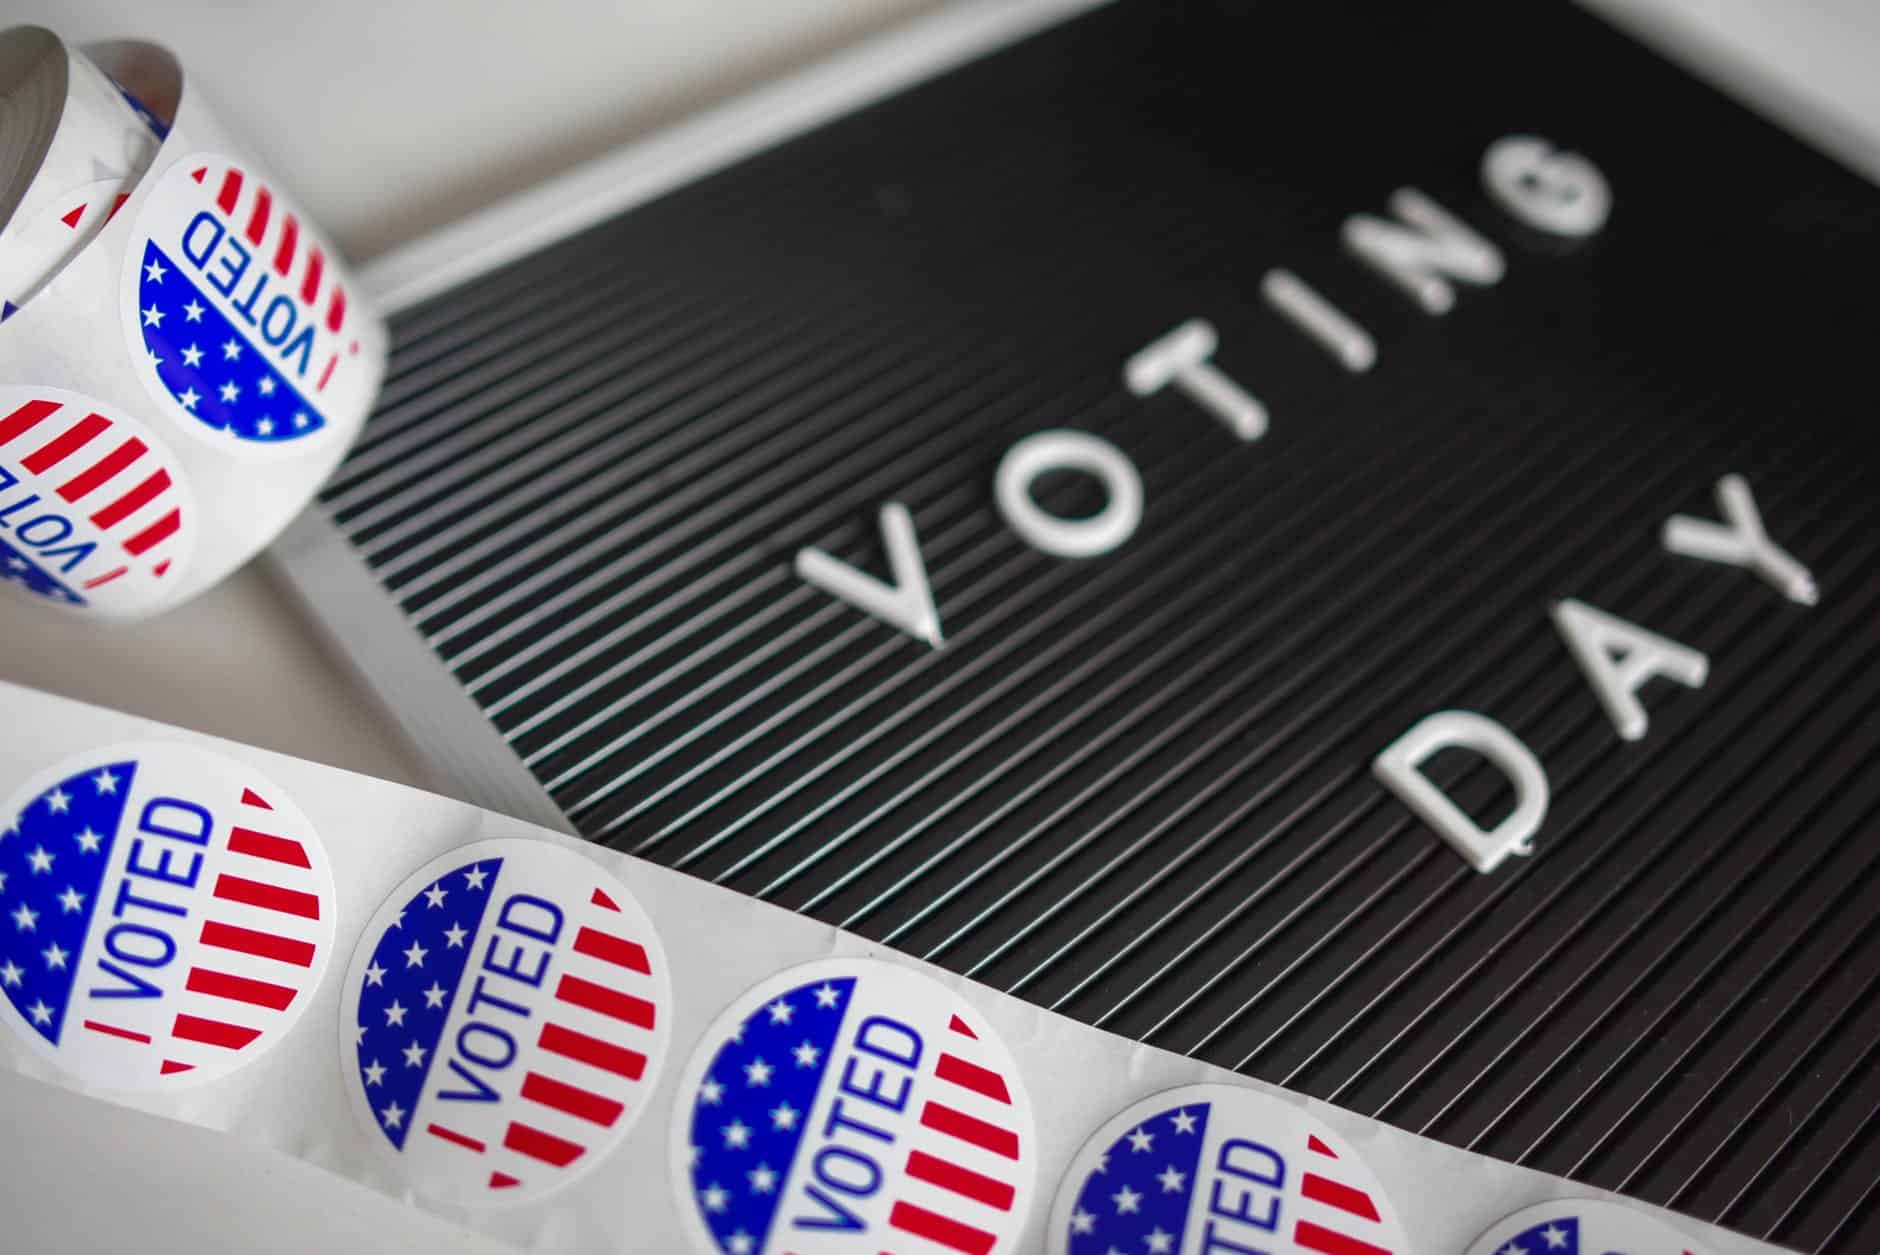 Voting day sign with I voted stickers